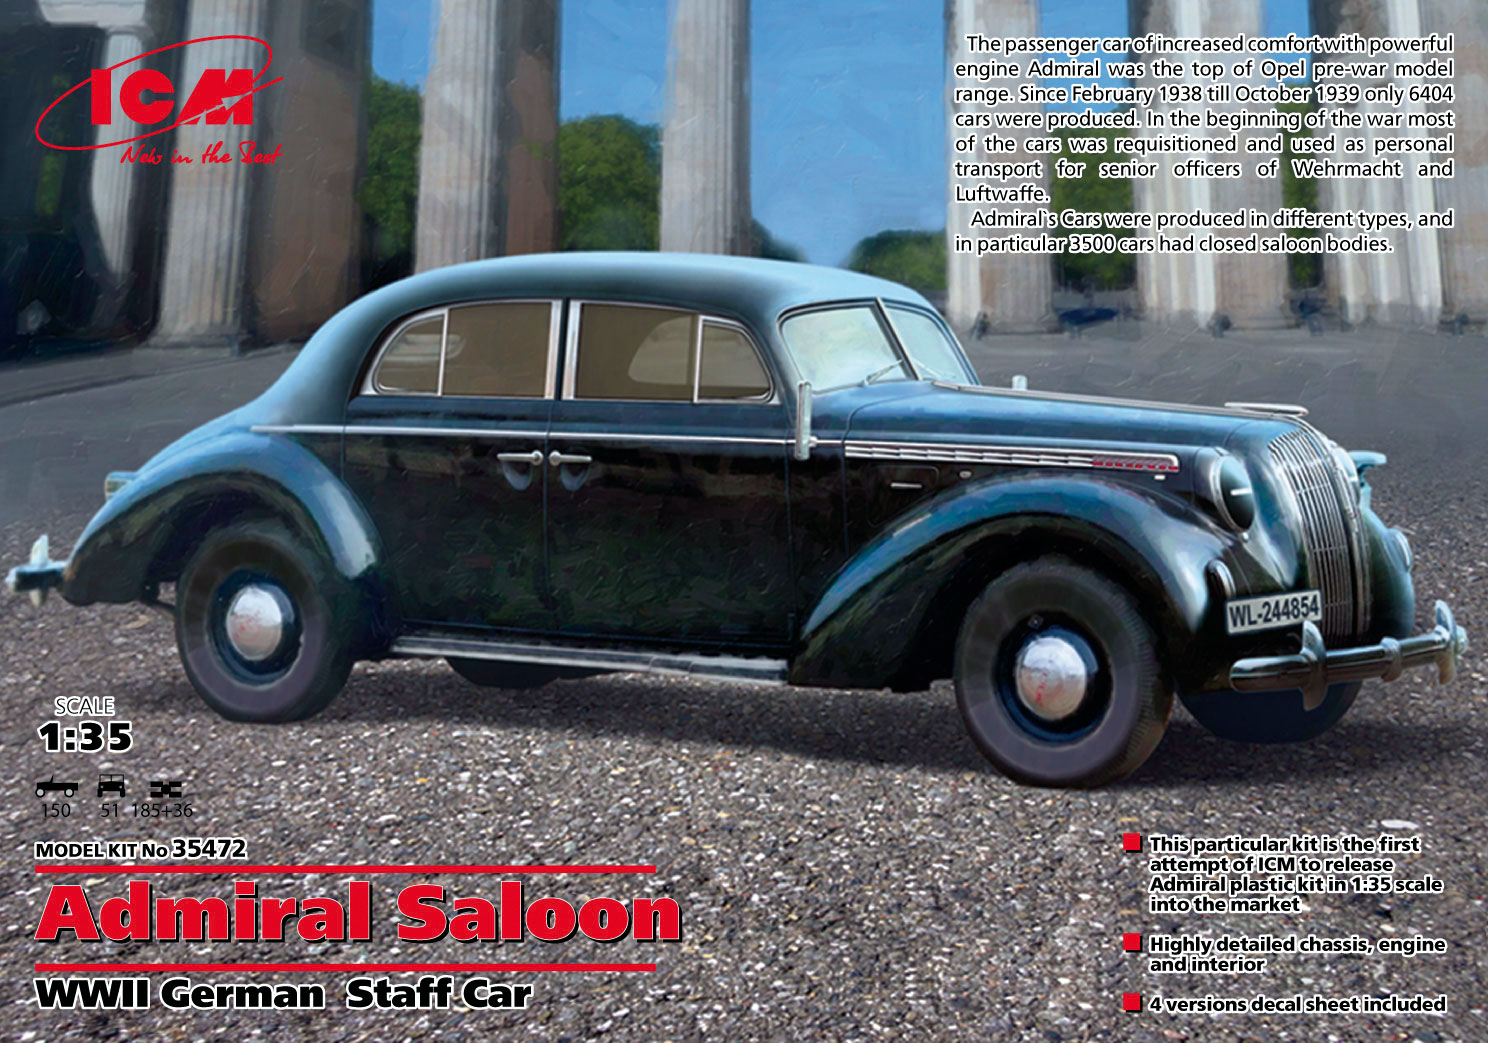 ADMIRAL SALOON WWII GERMAN STAFF CAR 1/35